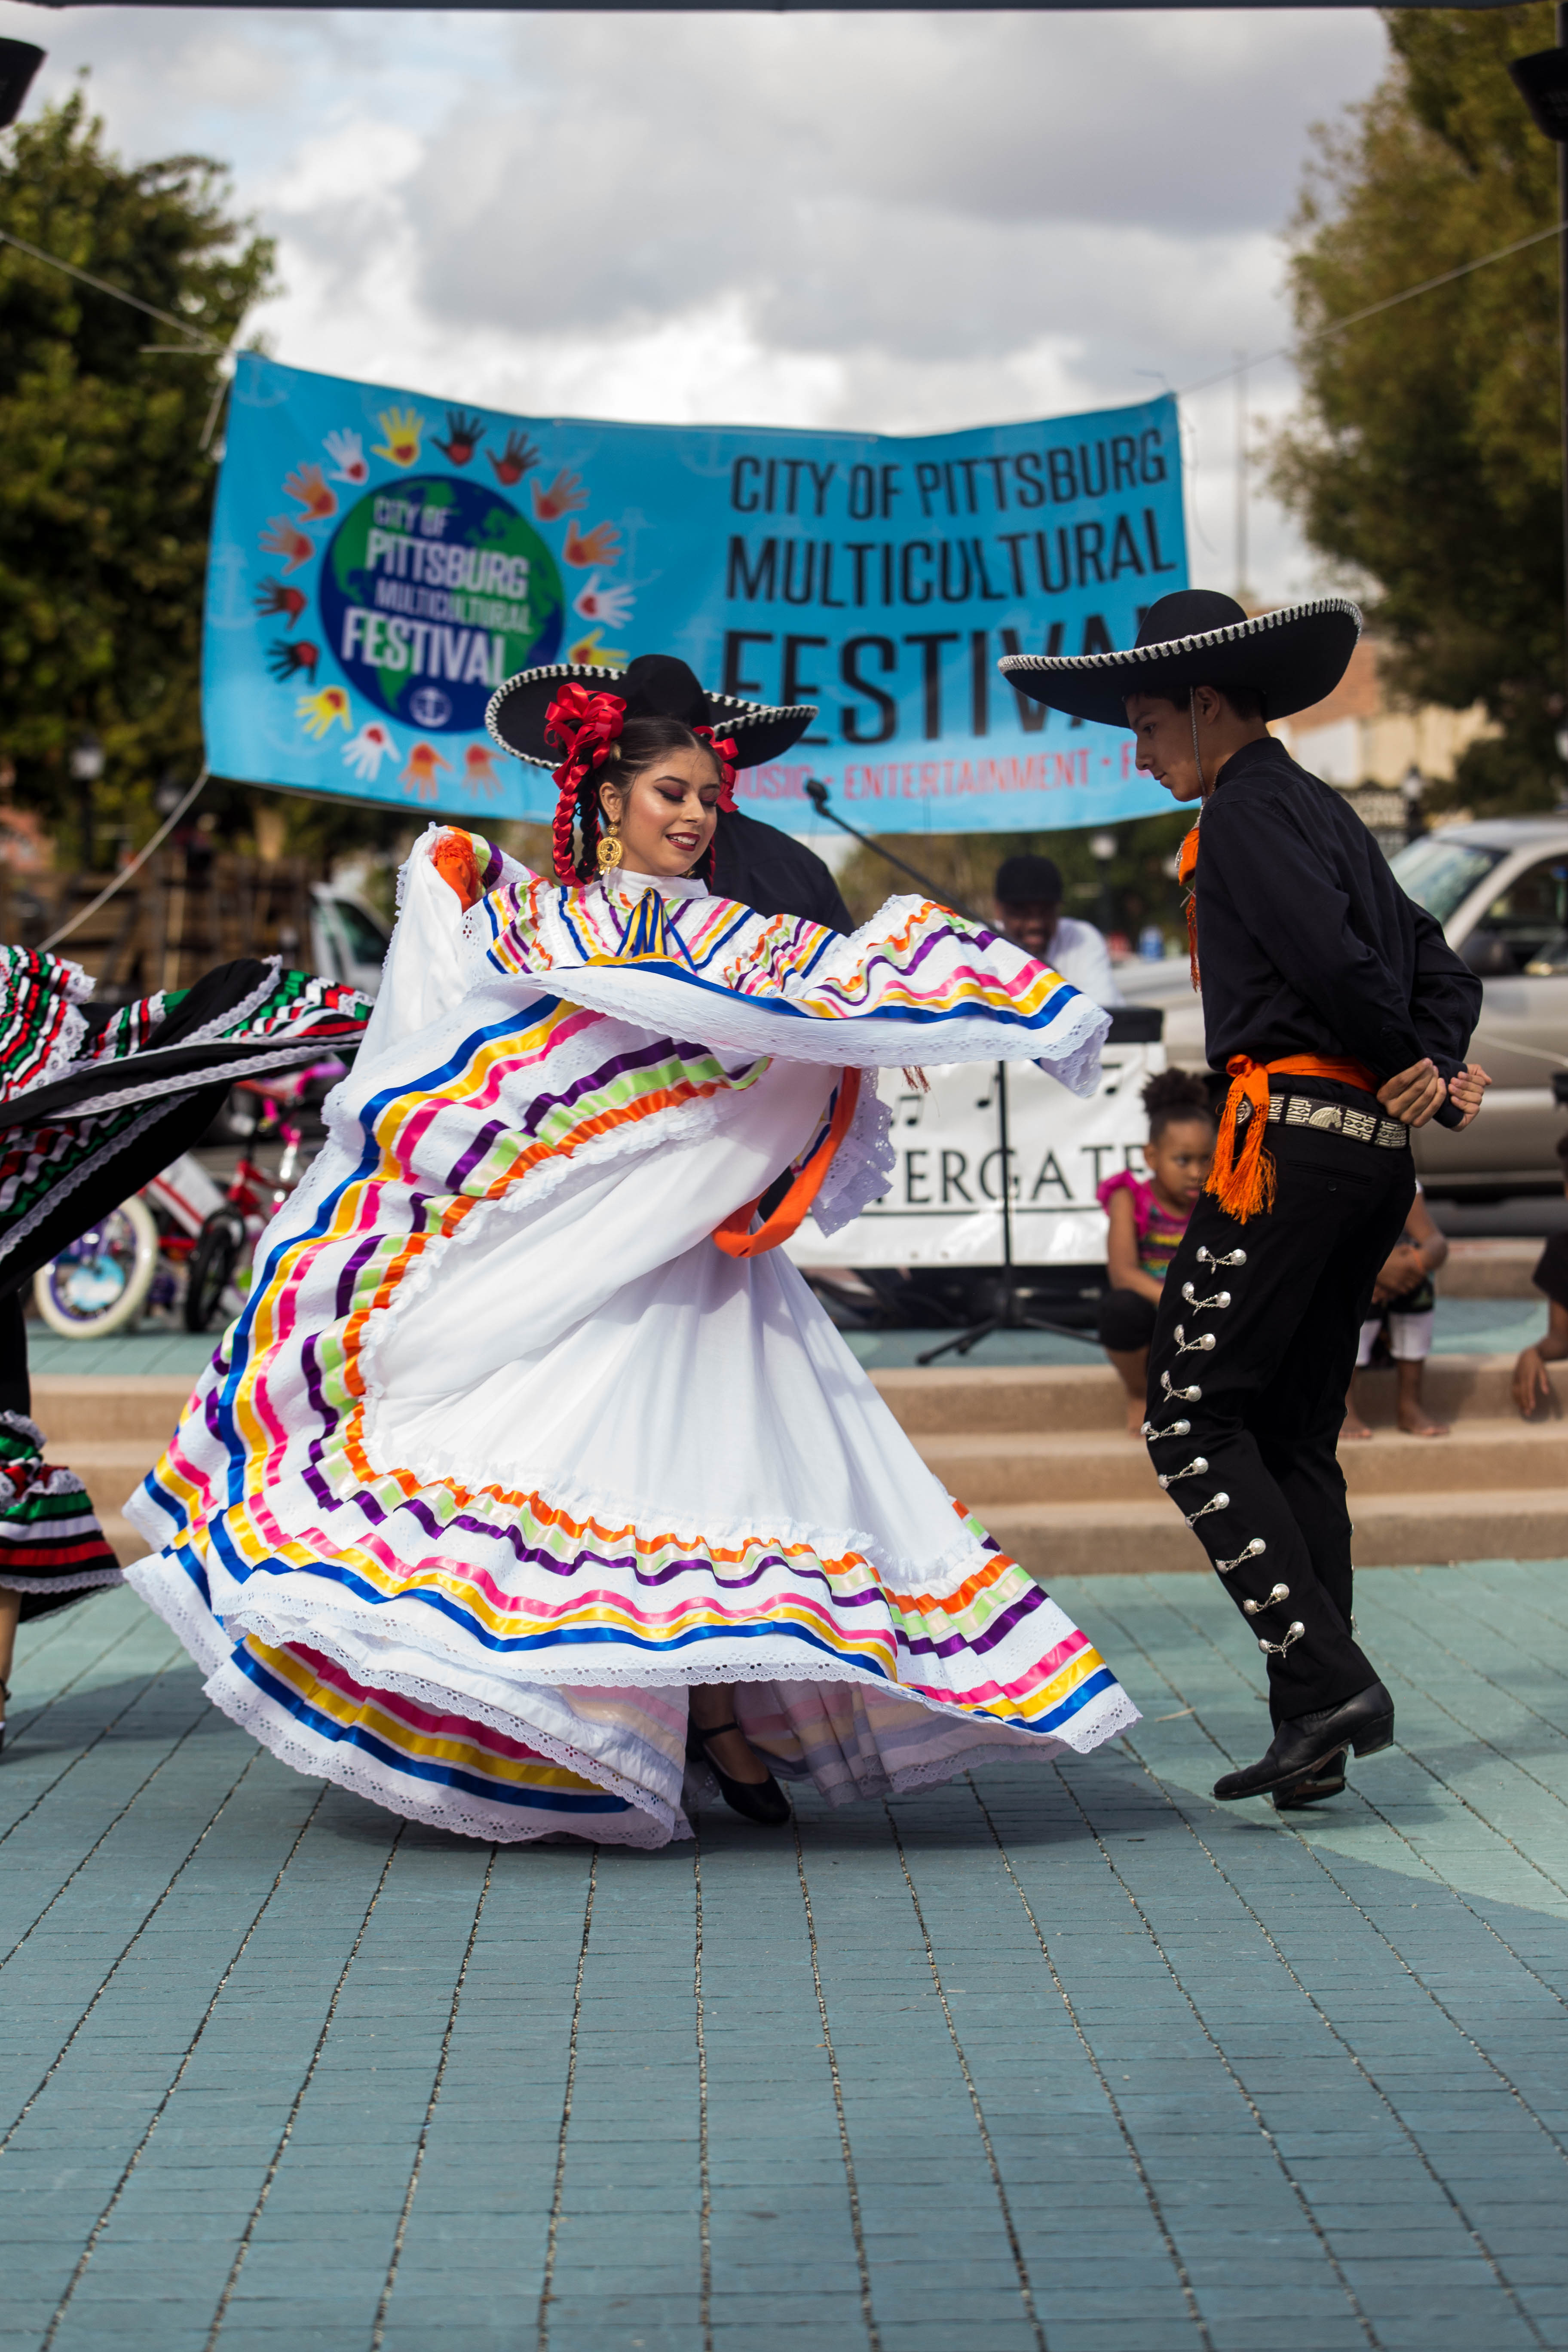 CITY_PITTSBURG_MULTICULTURAL_OCTOBER_2016 (611)